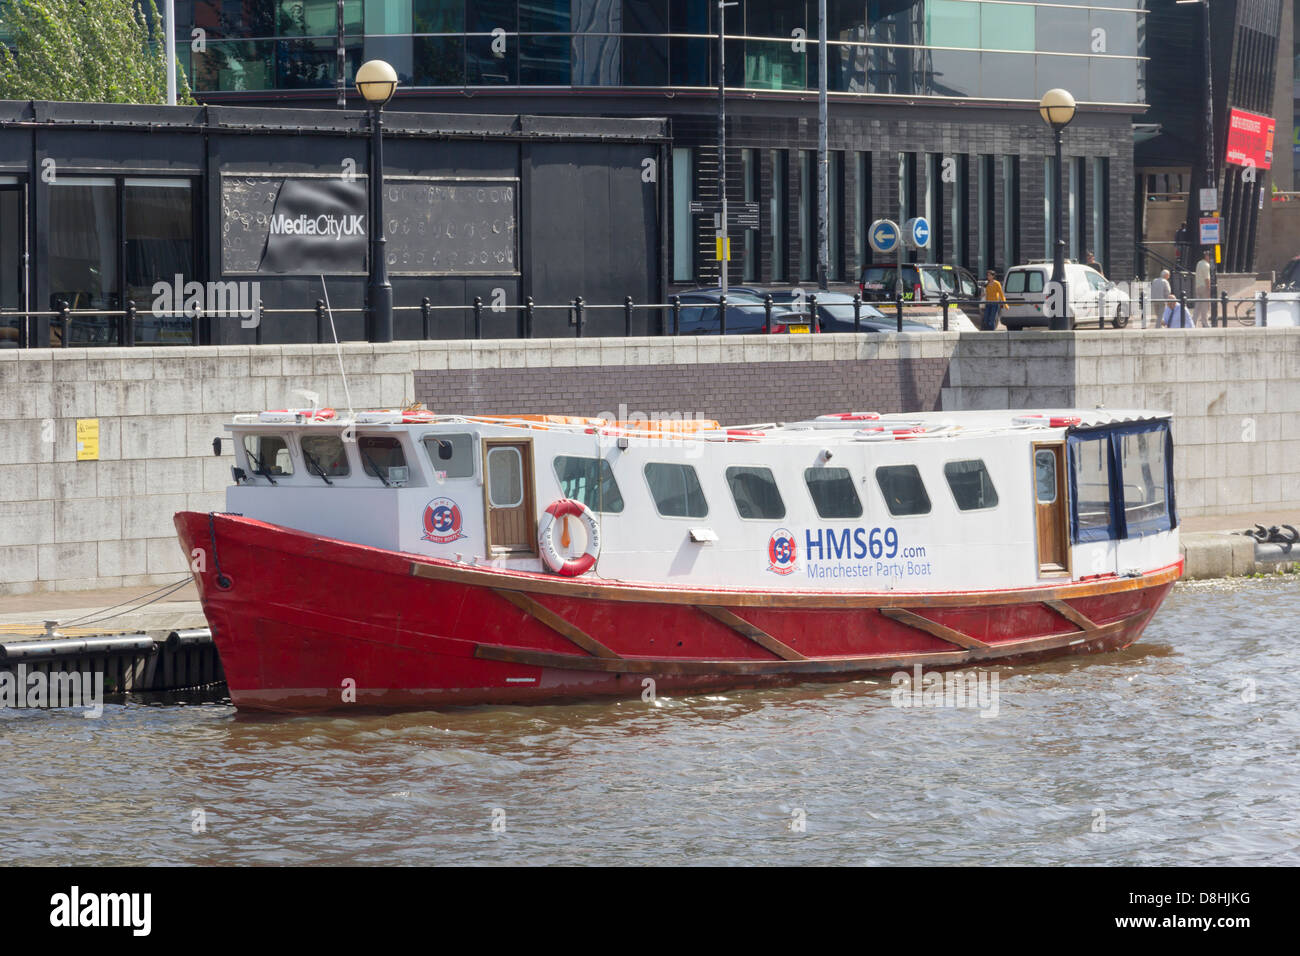 HMS69 Manchester Party Boat, private hire specialising in private hire party groups. Moored at Salford Quays, England Stock Photo